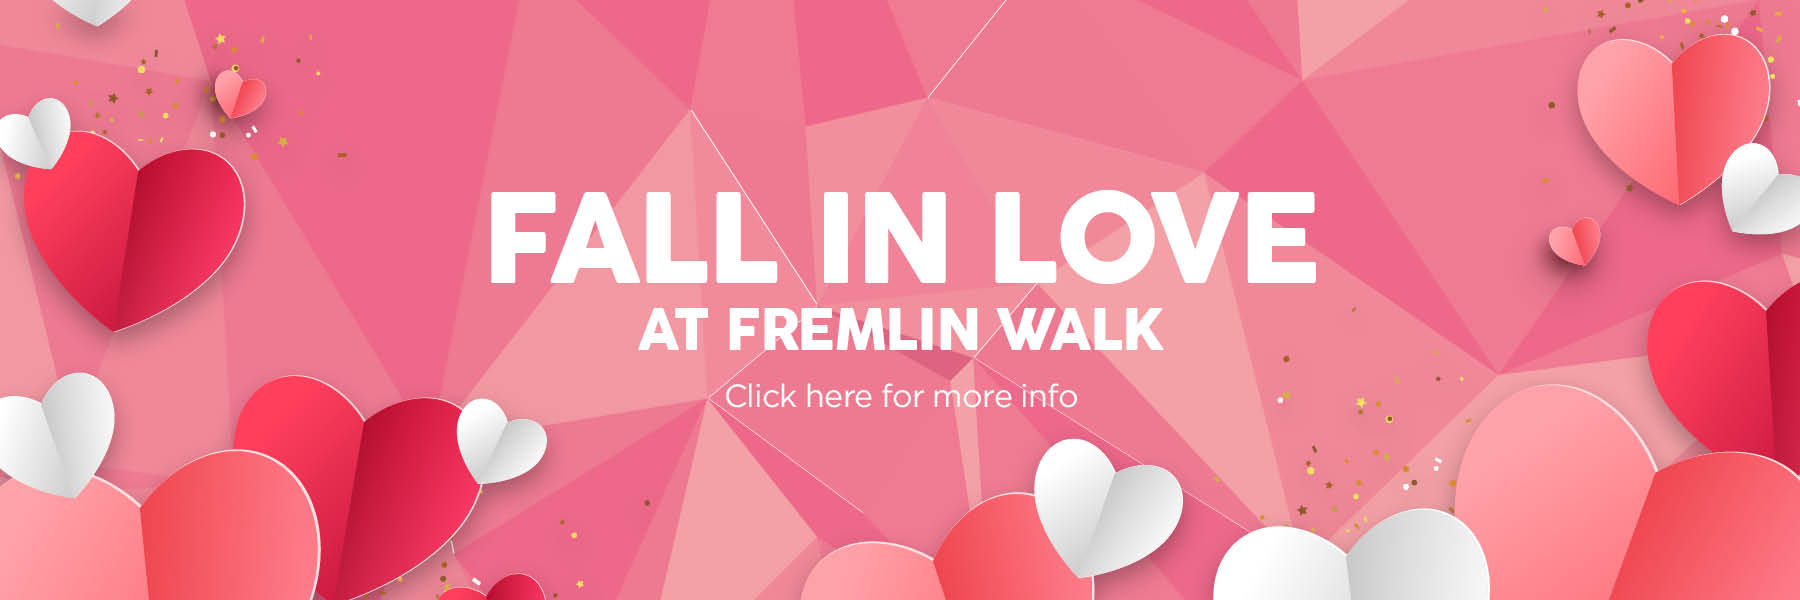 Fall in Love at Fremlin Walk